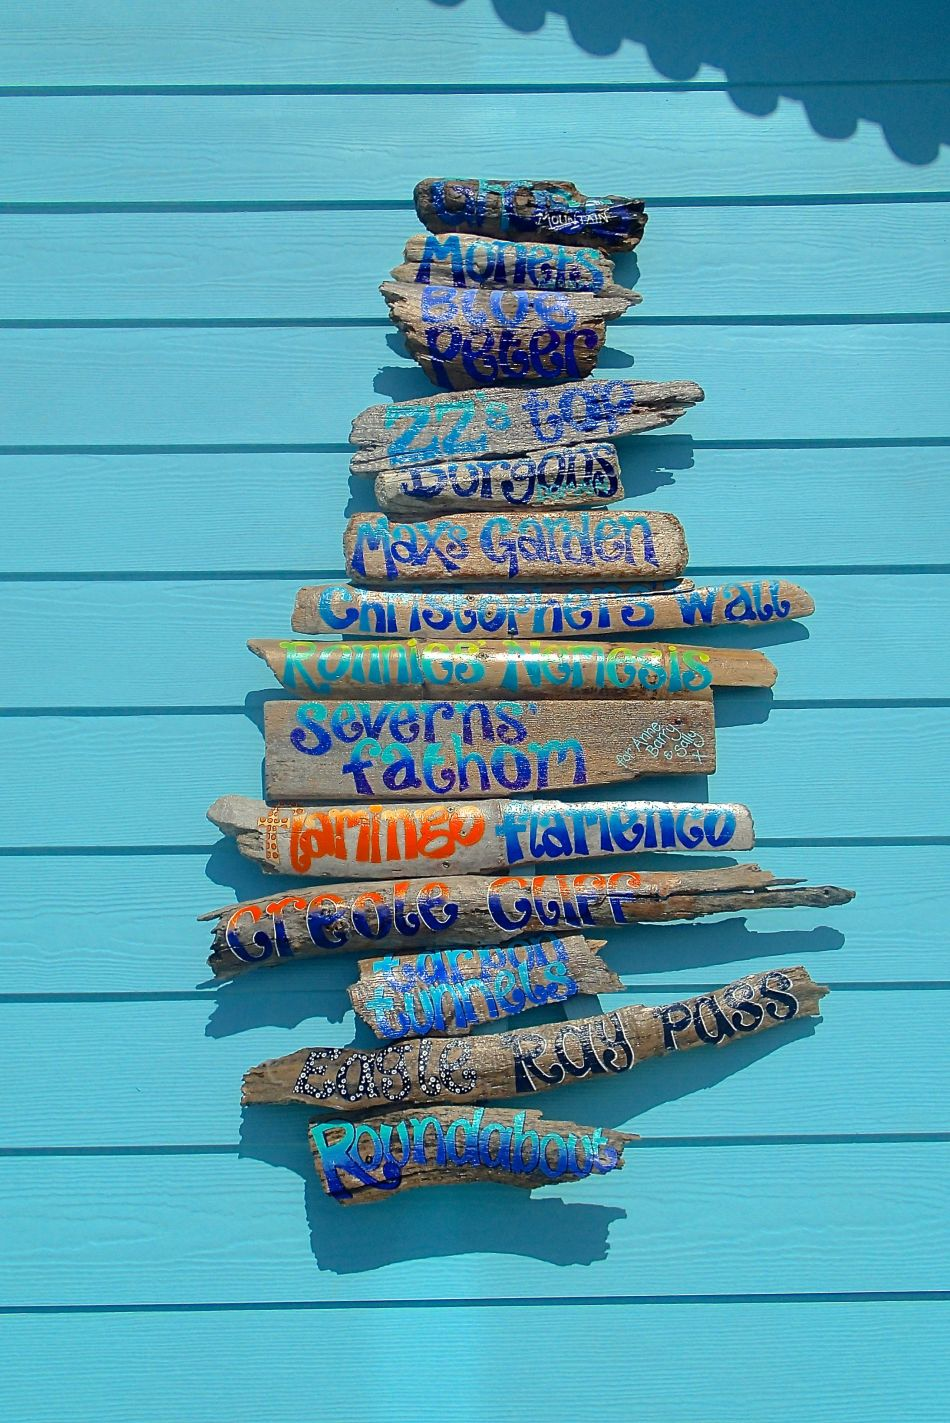 Kate's hand painted driftwood, detailing North Wall dive sites.